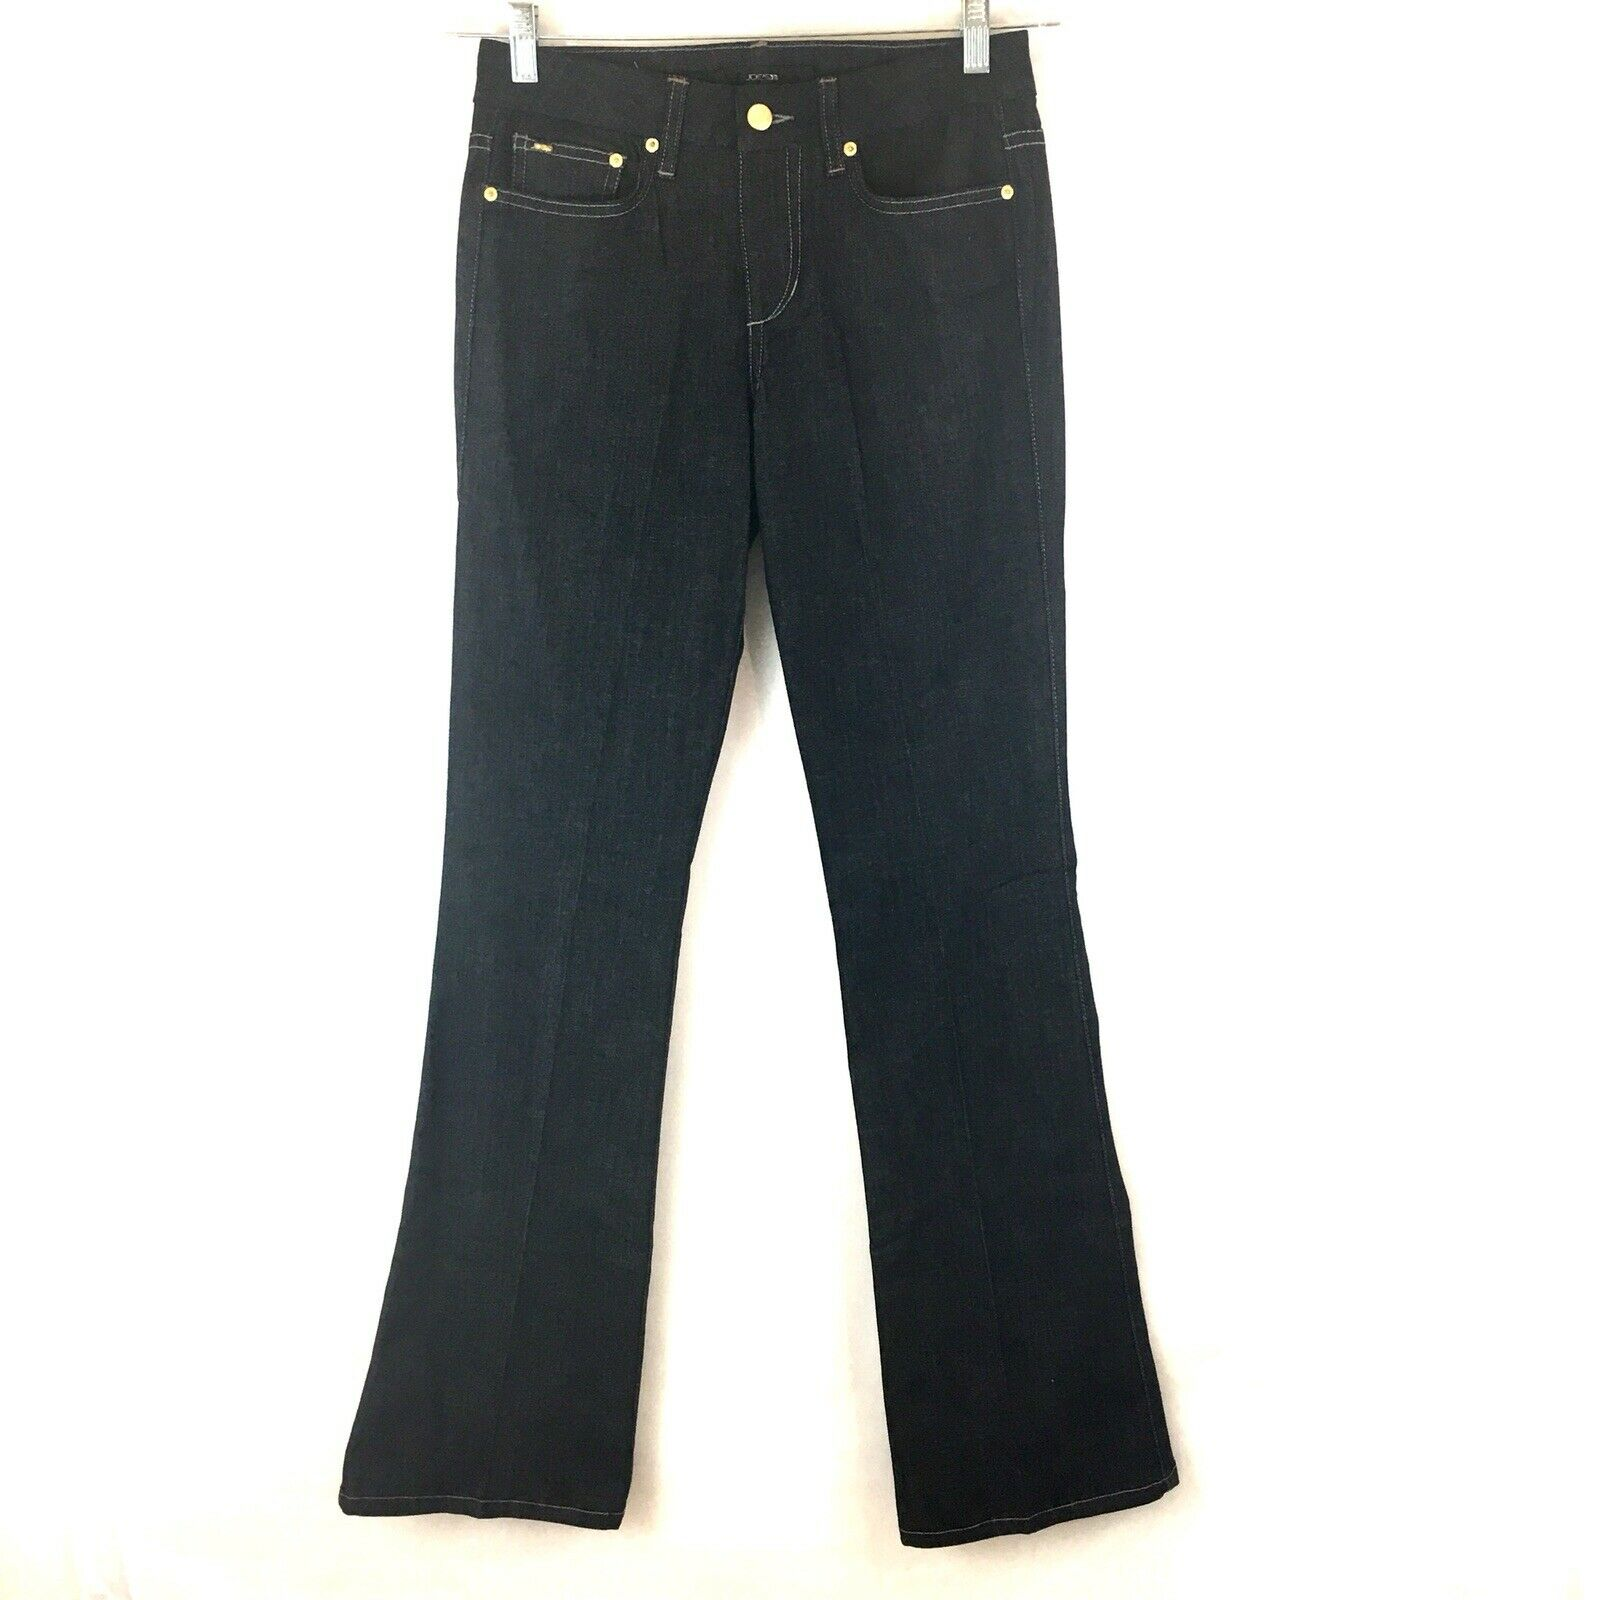 NEW Joe's Jeans Women's The Muse High Rise Waist  Fit Dark Wash Jeans 26 Joes